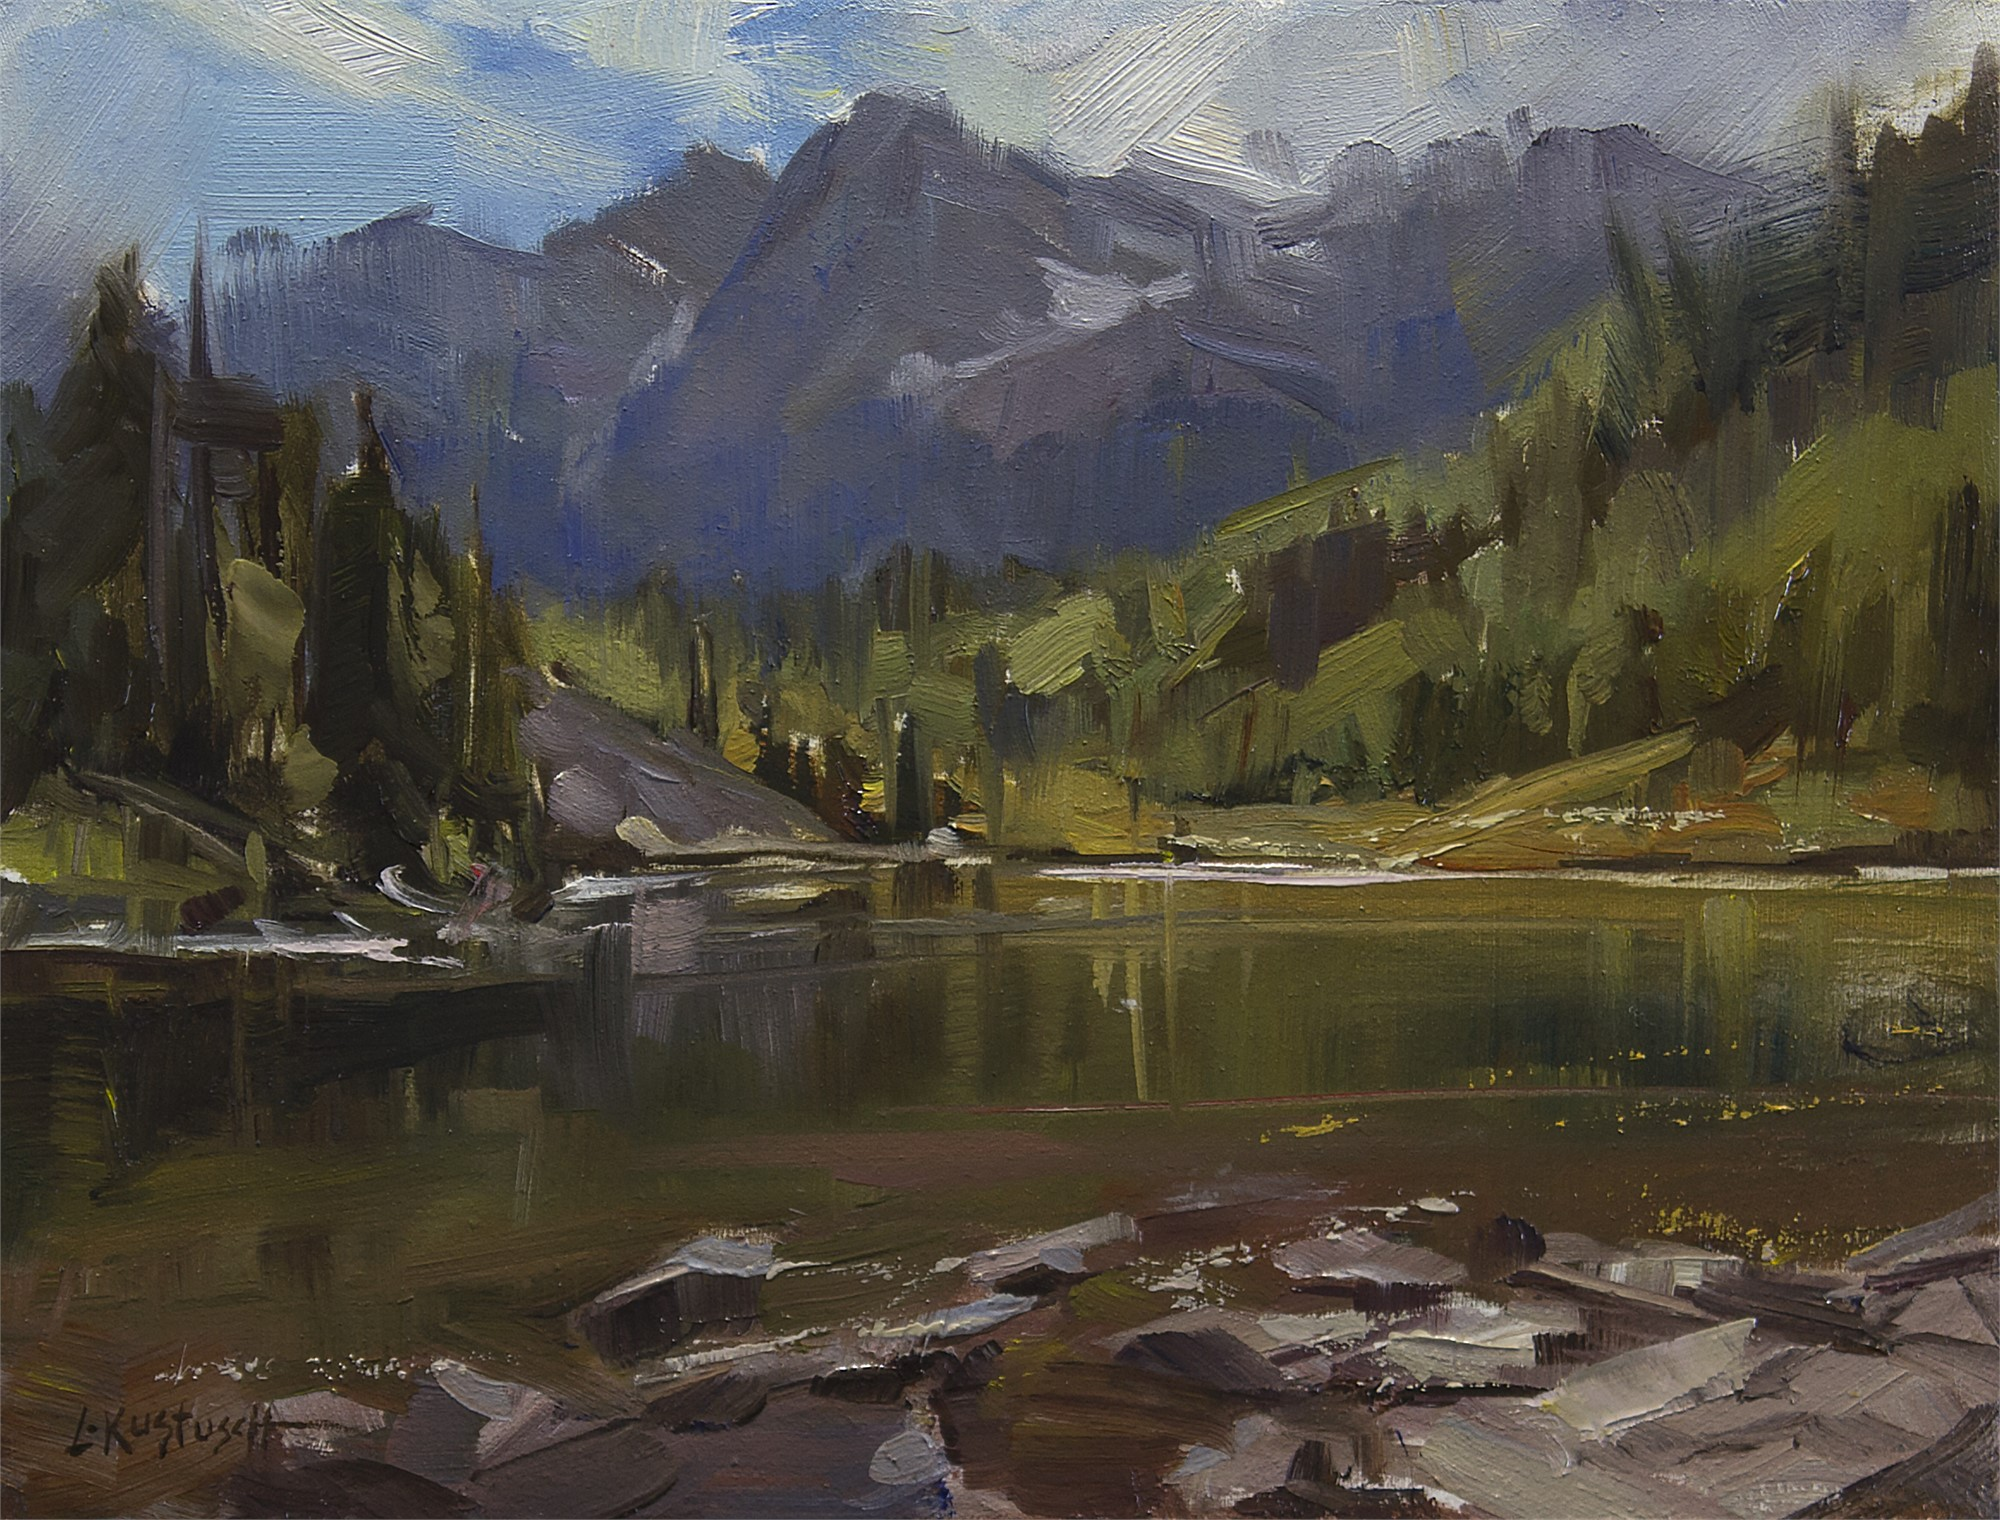 Plein Air at Maroon Bells by Lindsey Kustusch